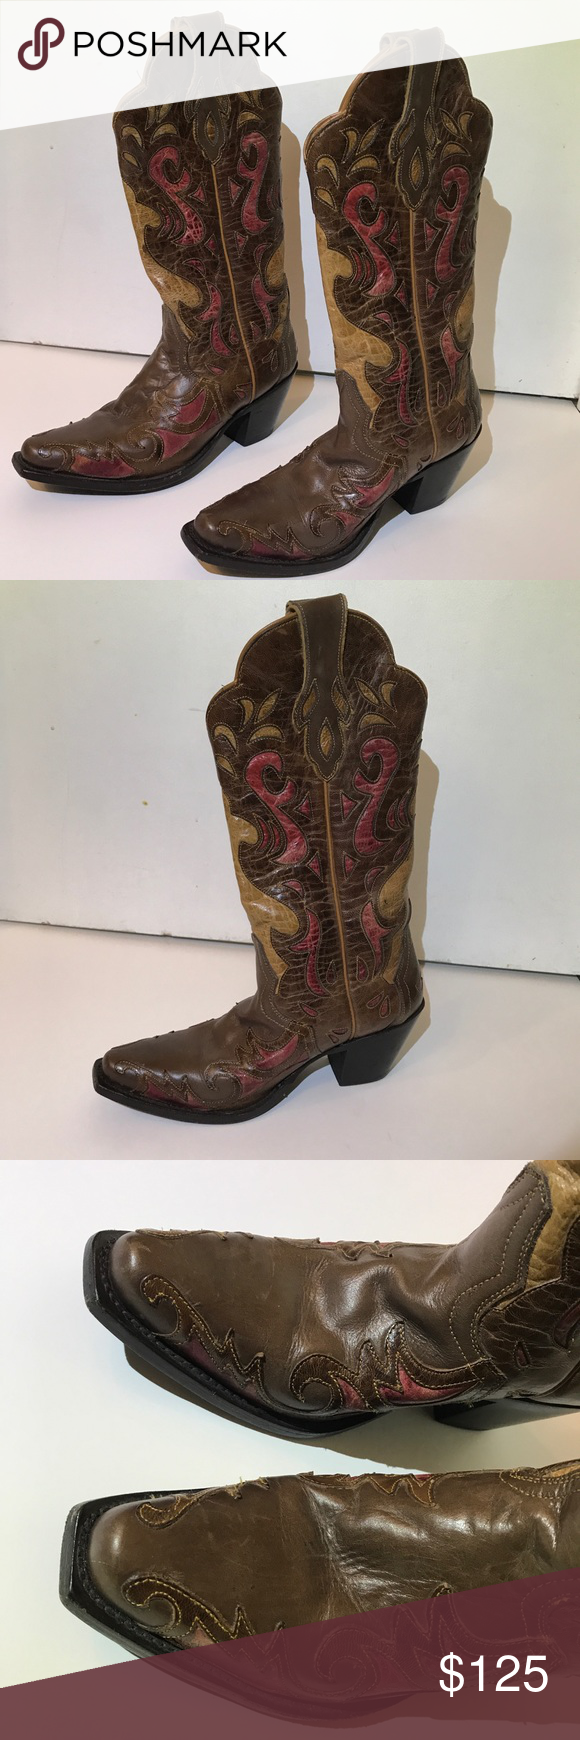 1dfdffed542 Nashville Leather Sterling River Cowboy Boots Genuine leather ...